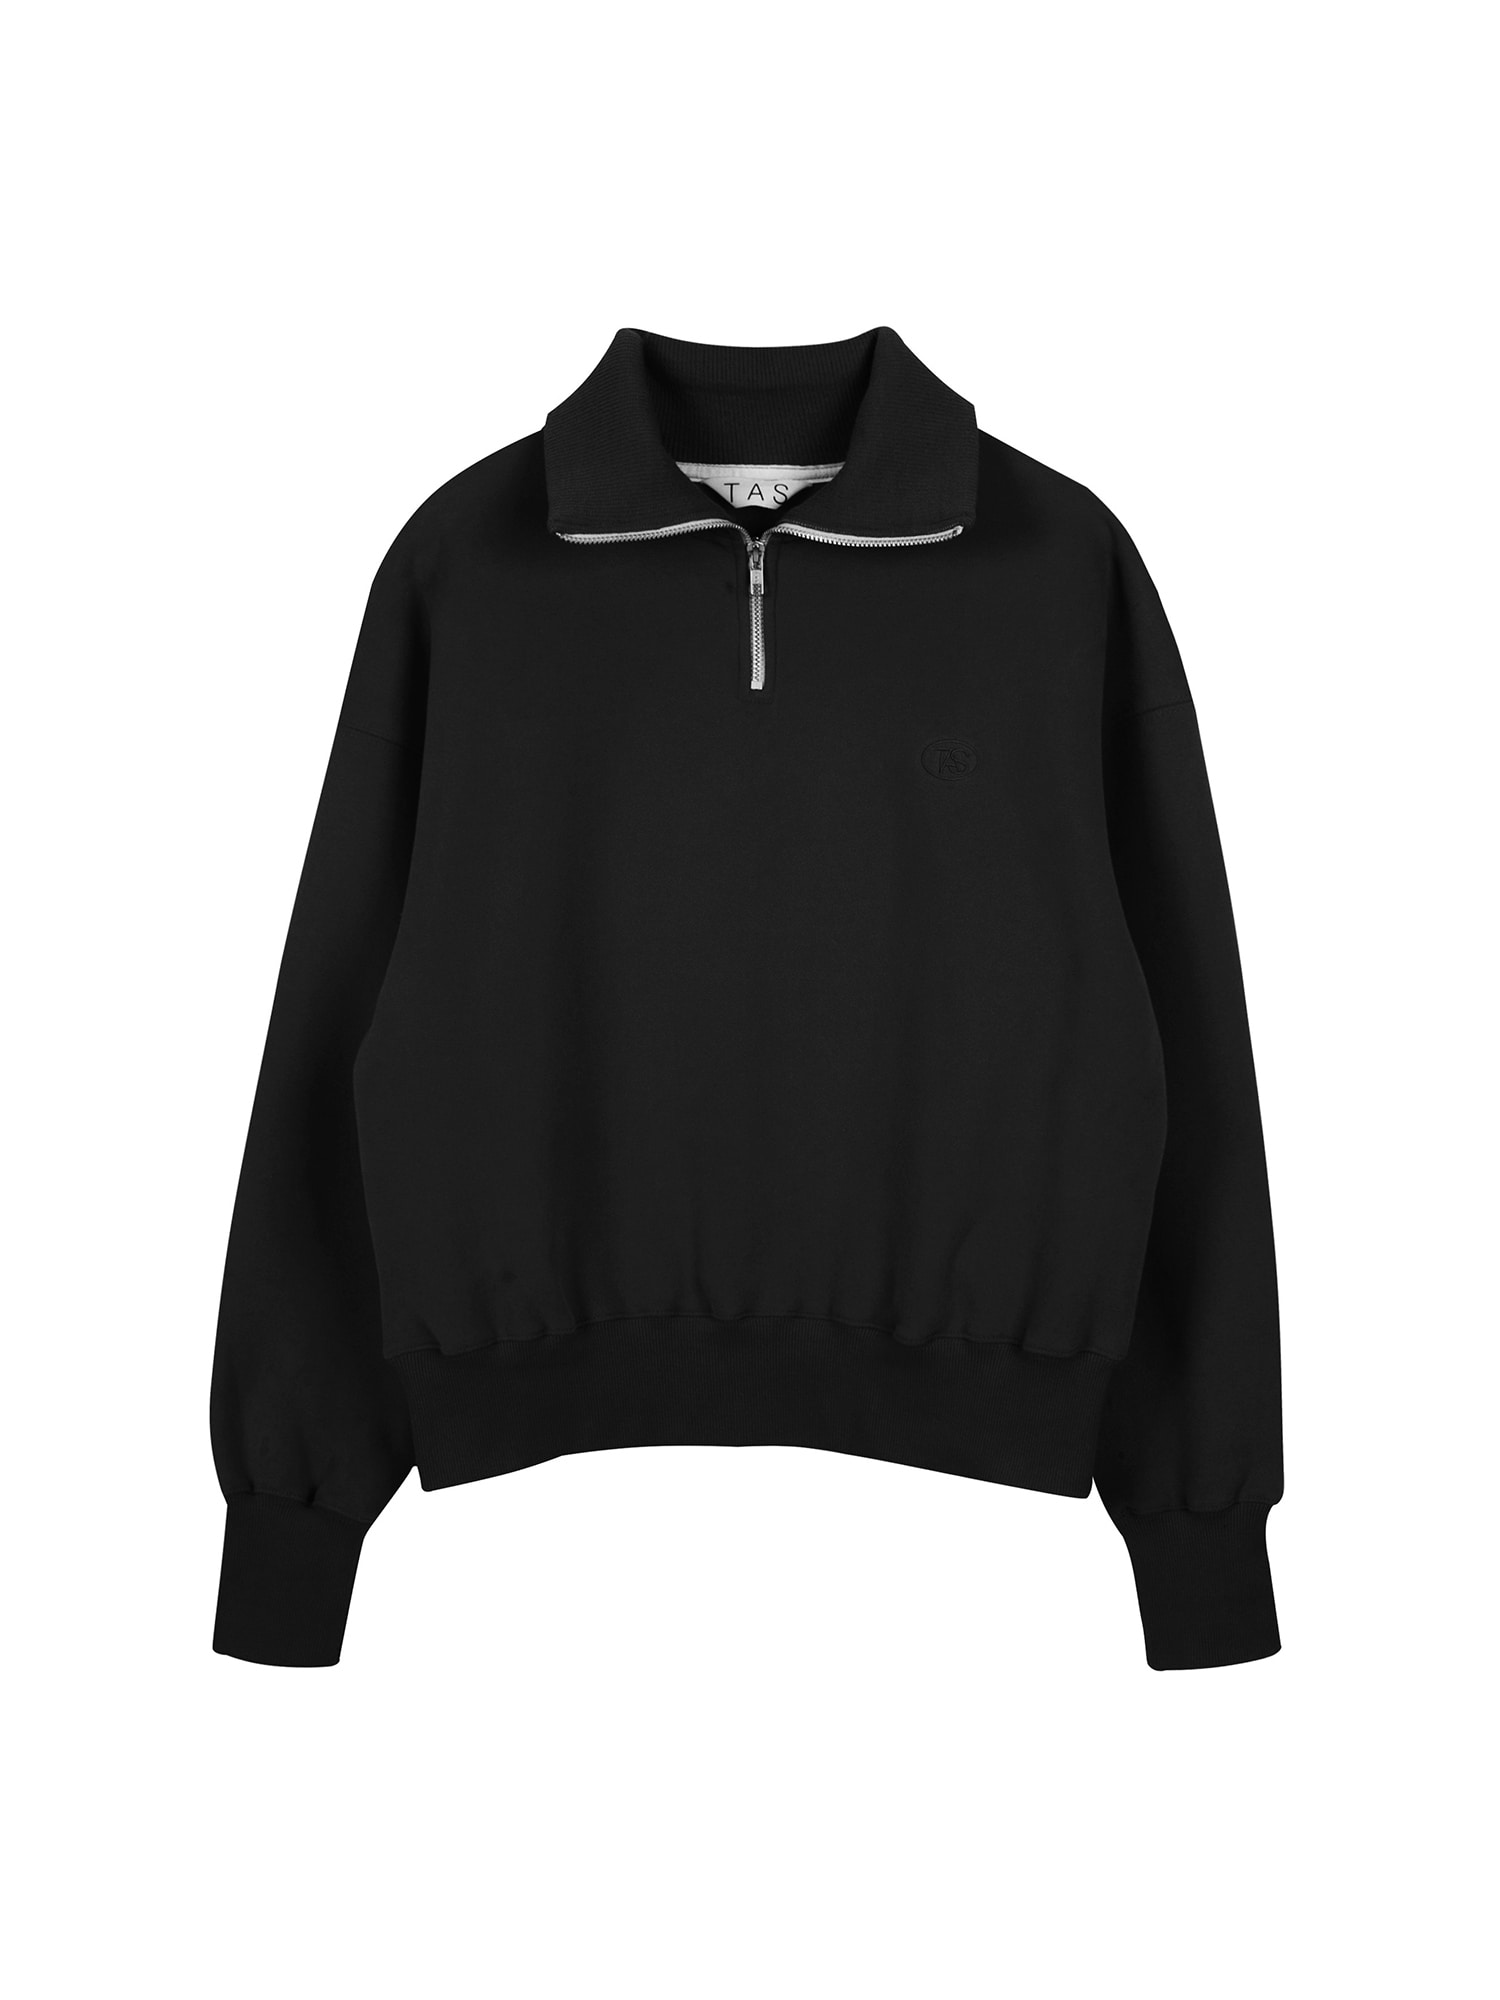 tas zip up sweat shirt (Black)